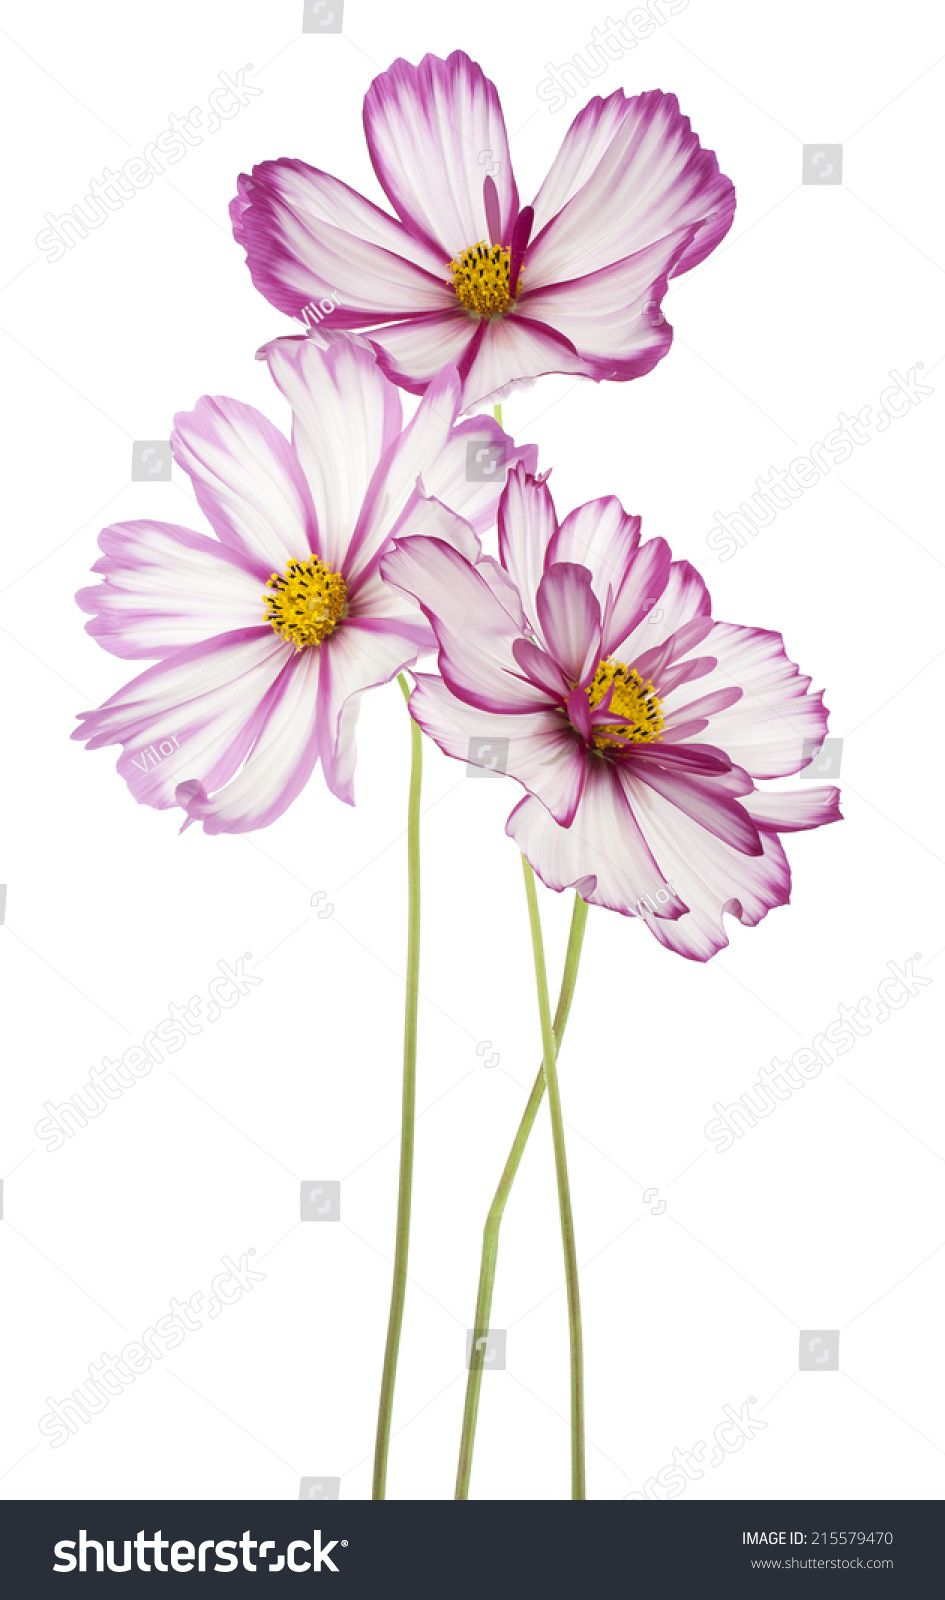 Studio Shot Of Fuchsia Colored Cosmos Flowers Isolated On White Background Large Depth Of Field Dof Loose Watercolor Flowers Cosmos Flowers Flower Drawing